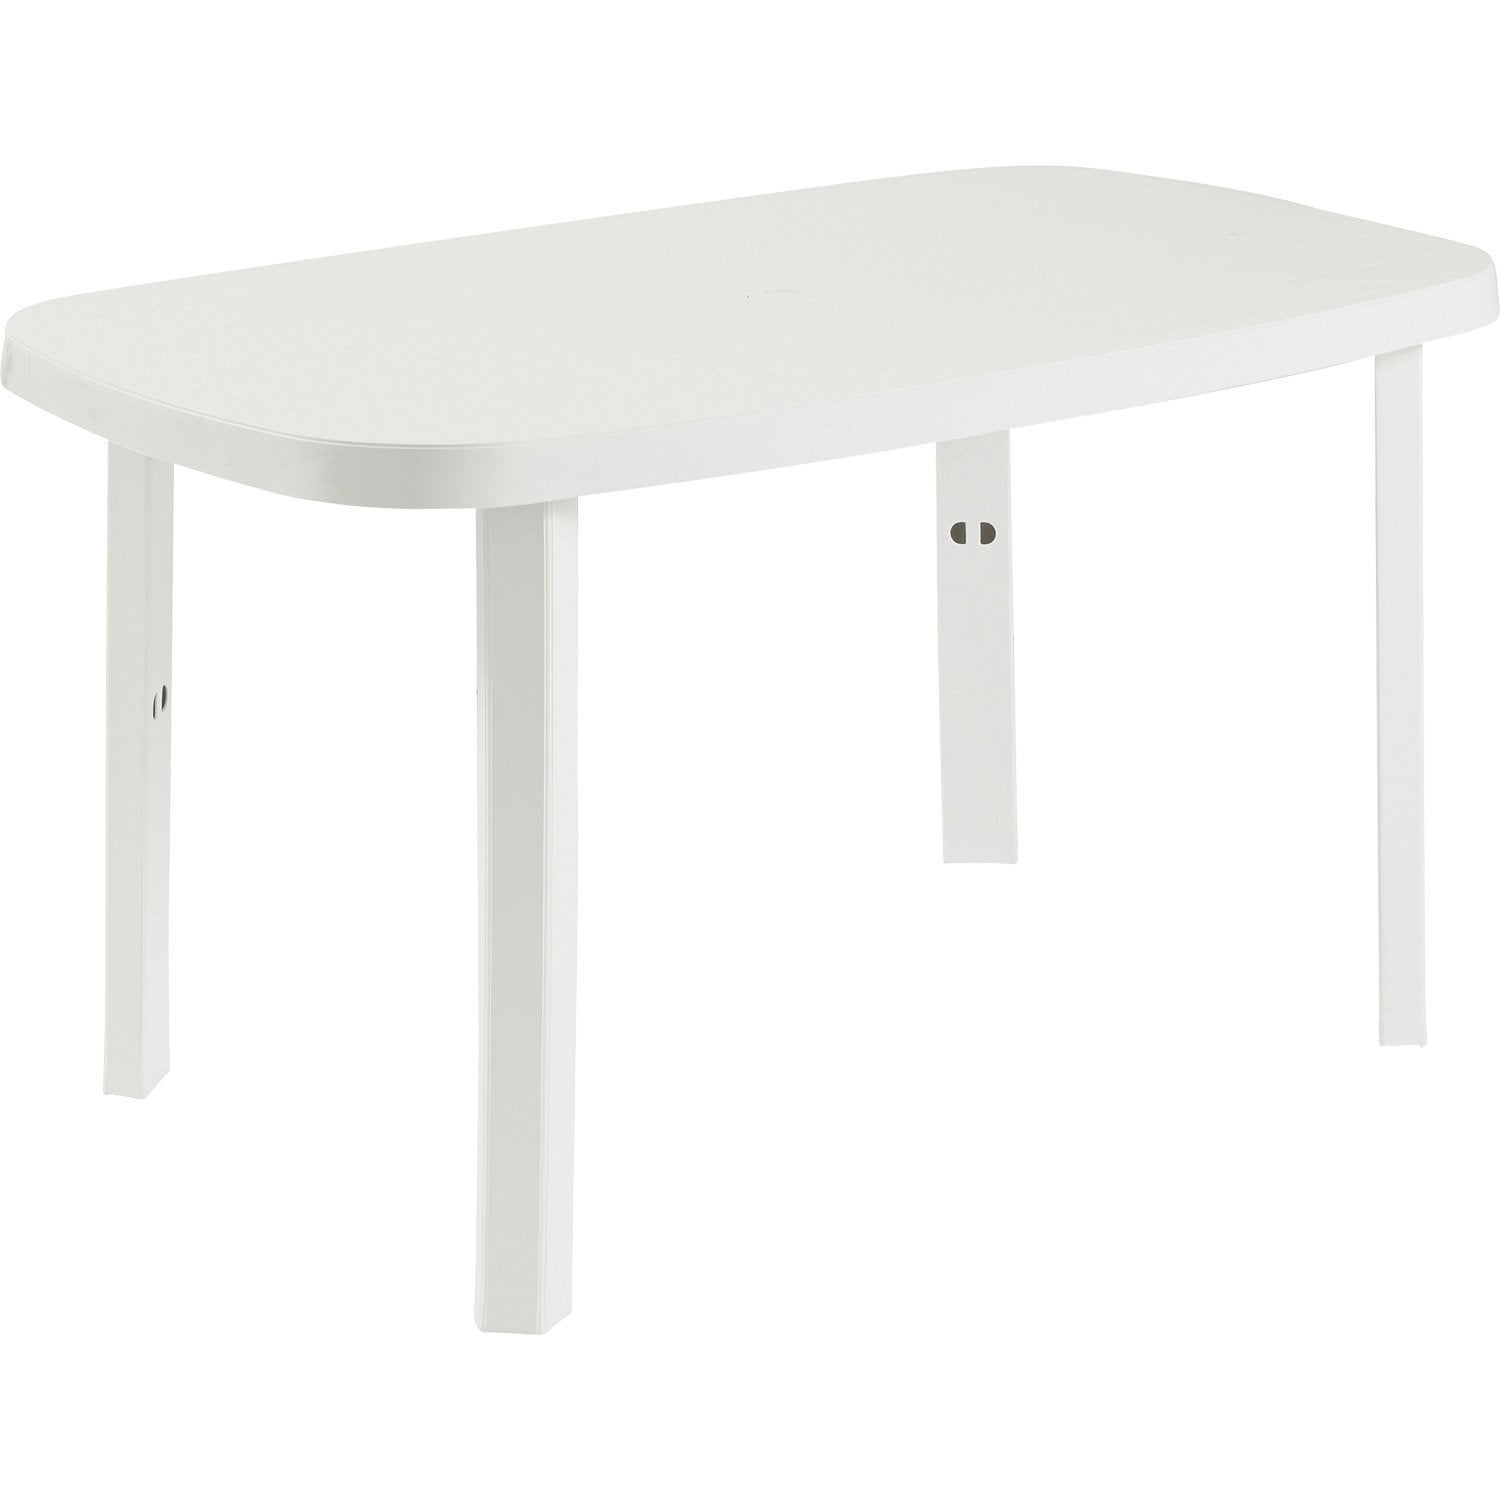 table de jardin de repas otello ovale blanc 2 personnes. Black Bedroom Furniture Sets. Home Design Ideas